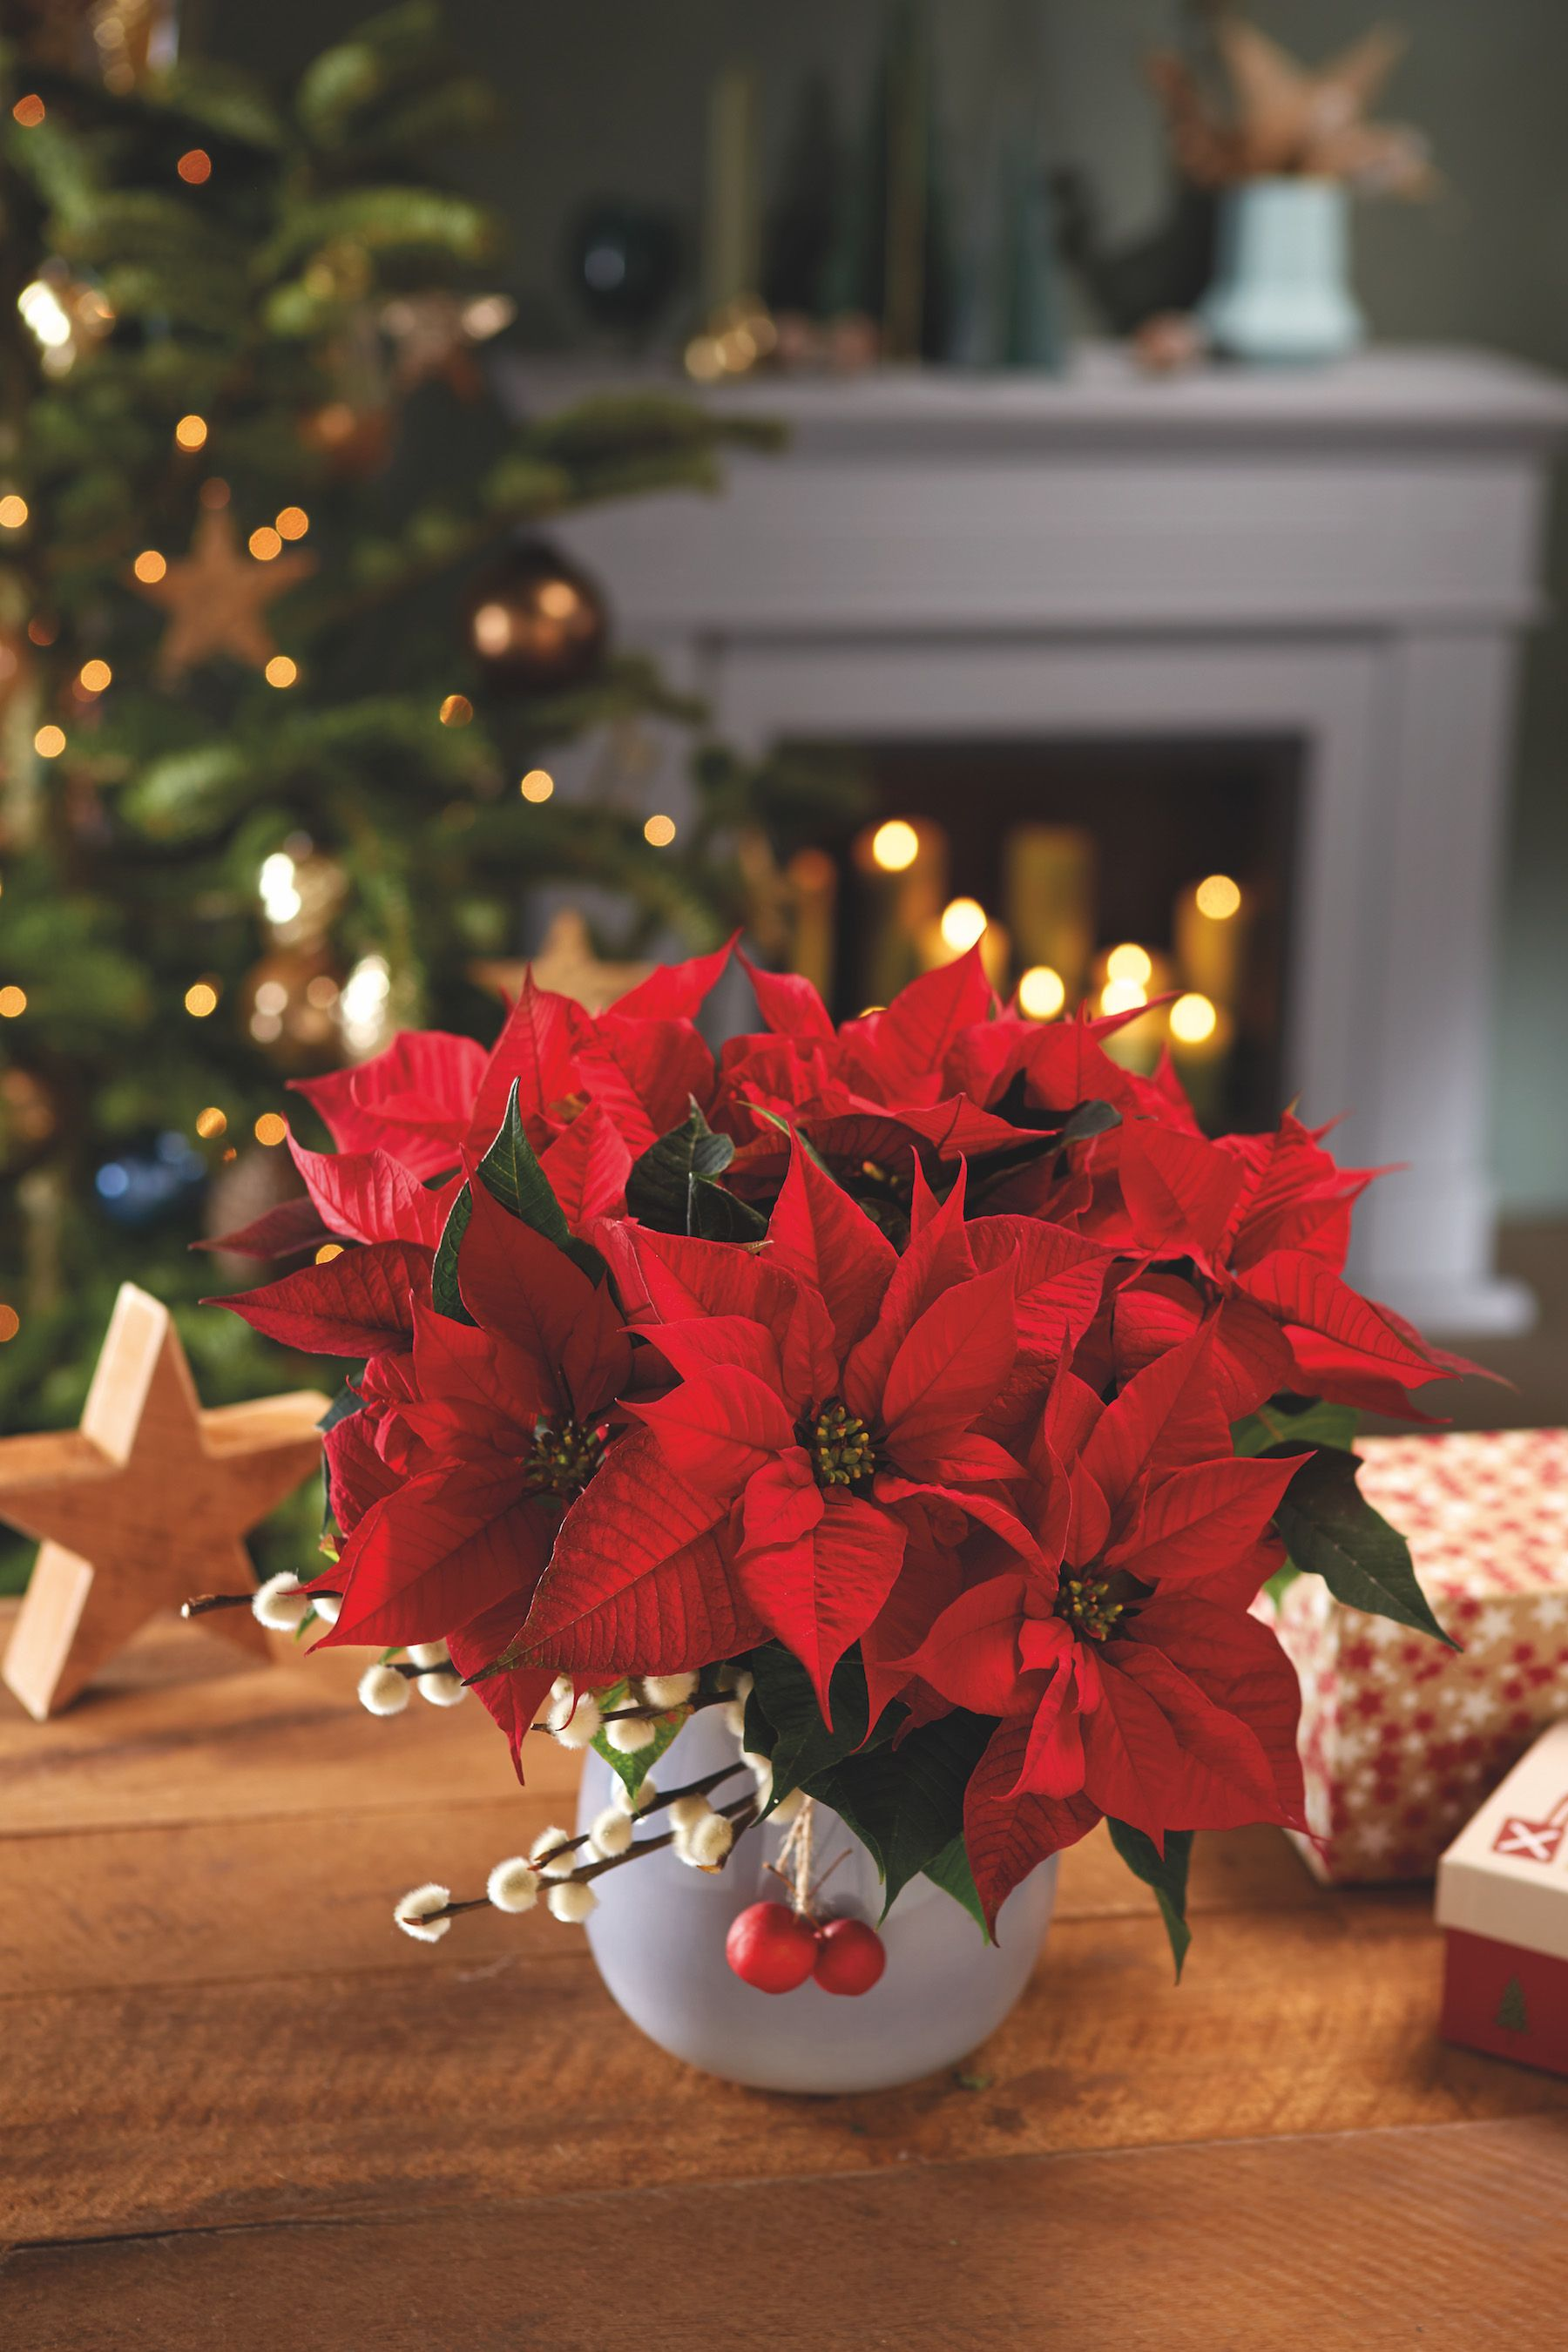 Poinsettas For Christmas 2020 Poinsettia Care Tips: 13 Golden Rules For A Poinsettia Plant